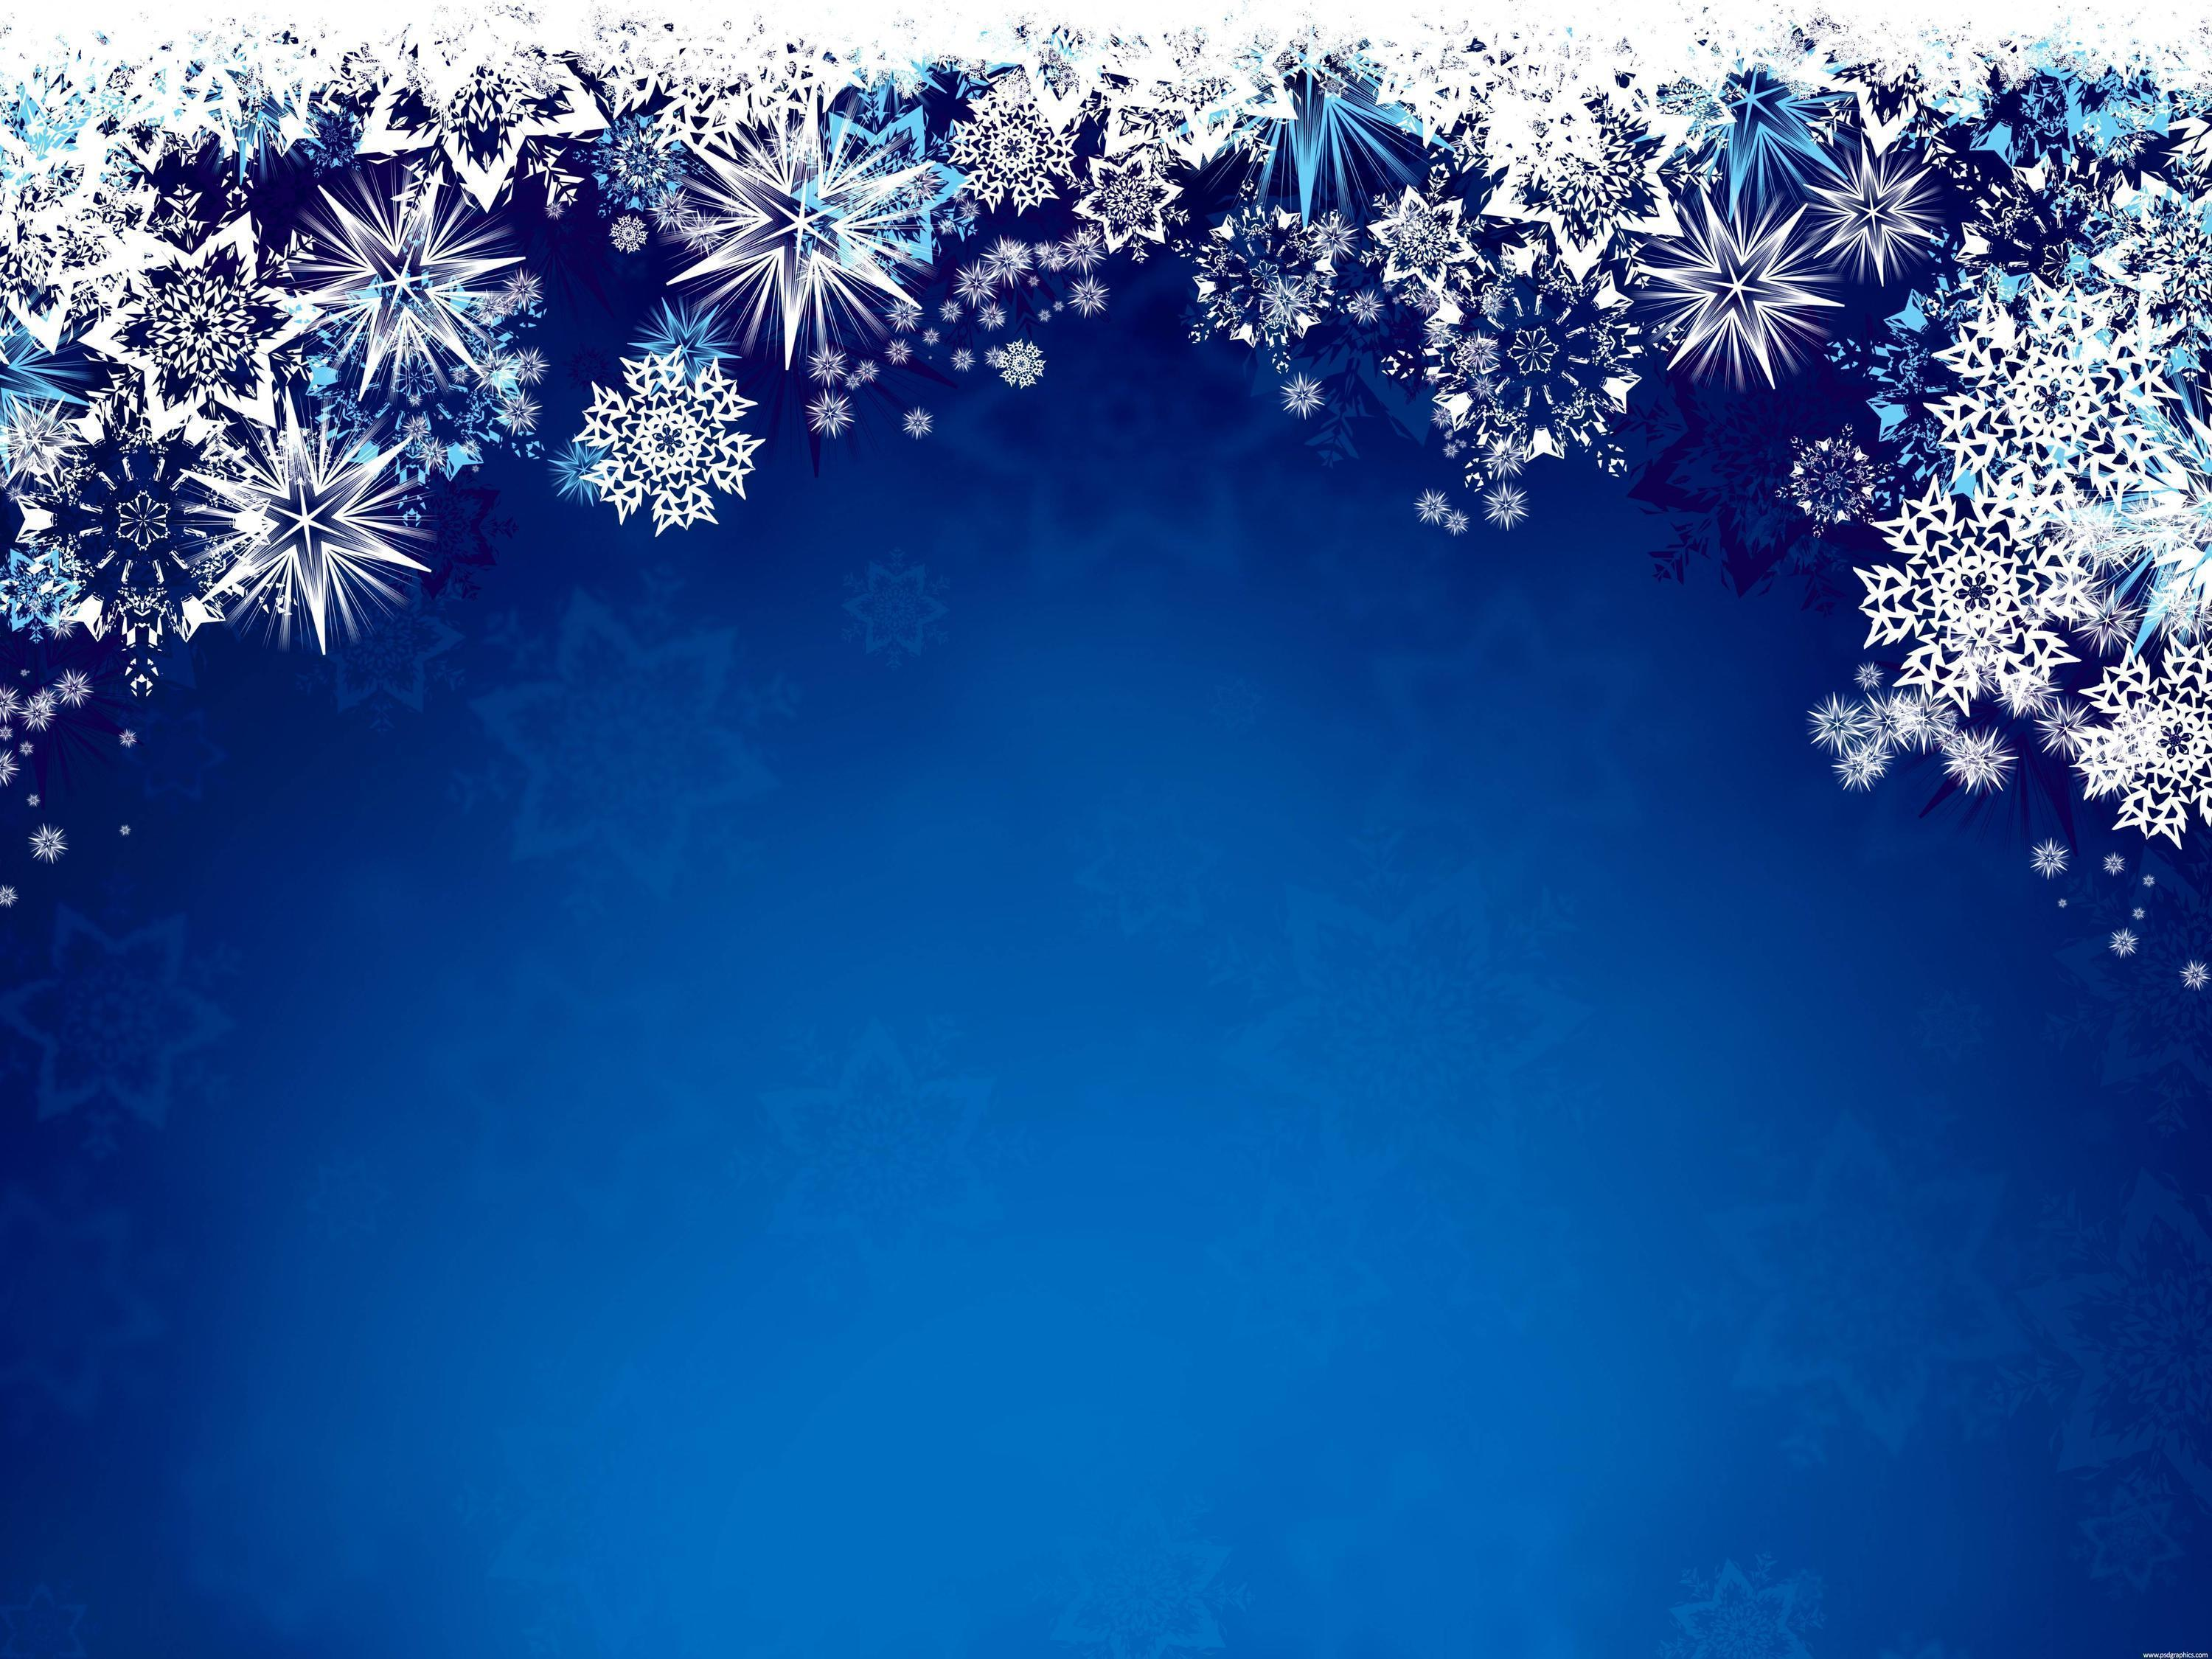 winter theme backgrounds cave abstract winter design psdgraphics